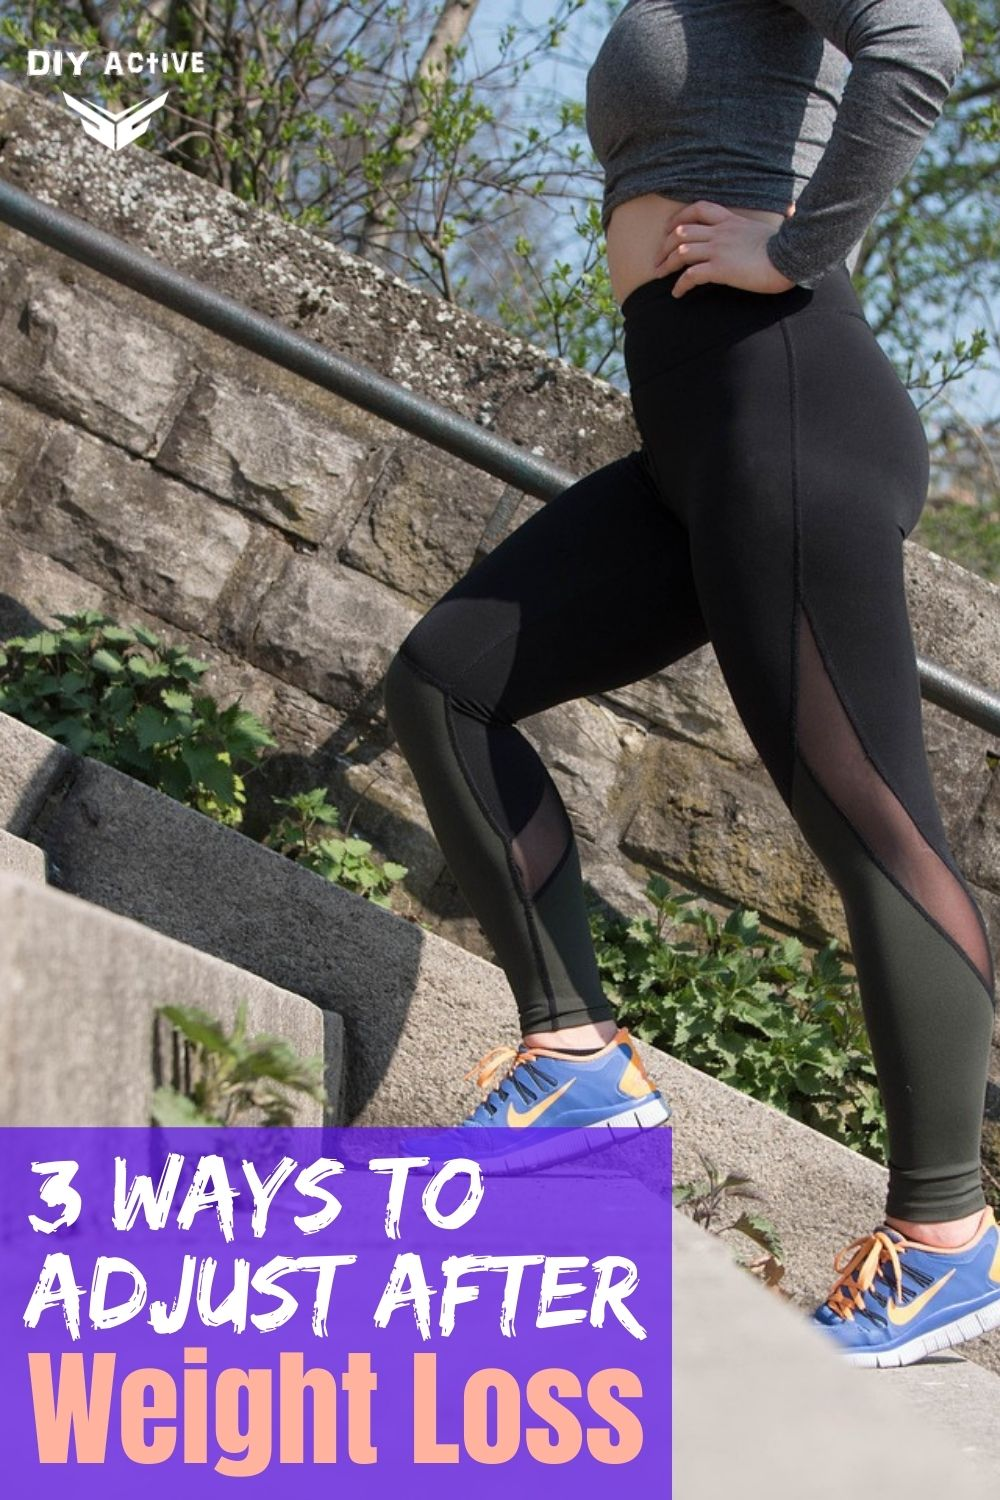 3 Ways to Adjust After Weight Loss